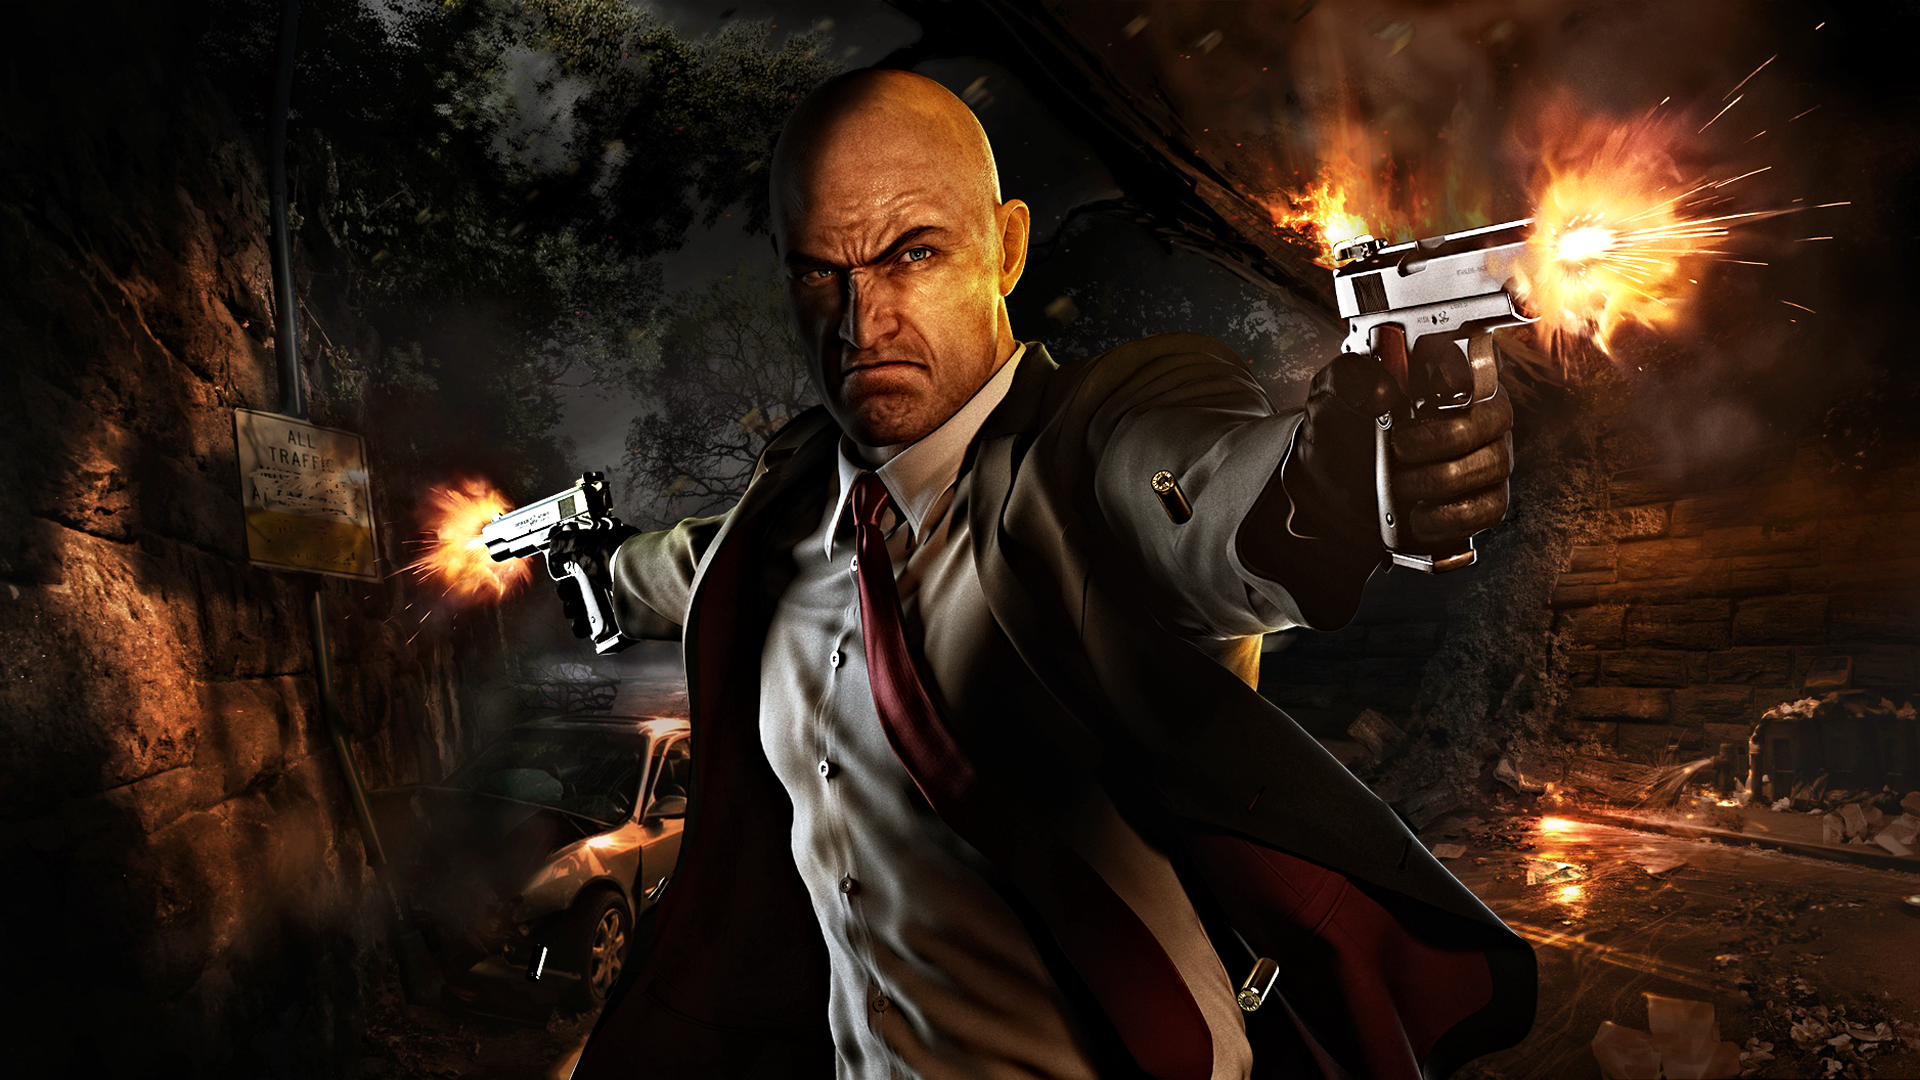 Hitman-Absolution-Wallpaper-HD-1080p2.png